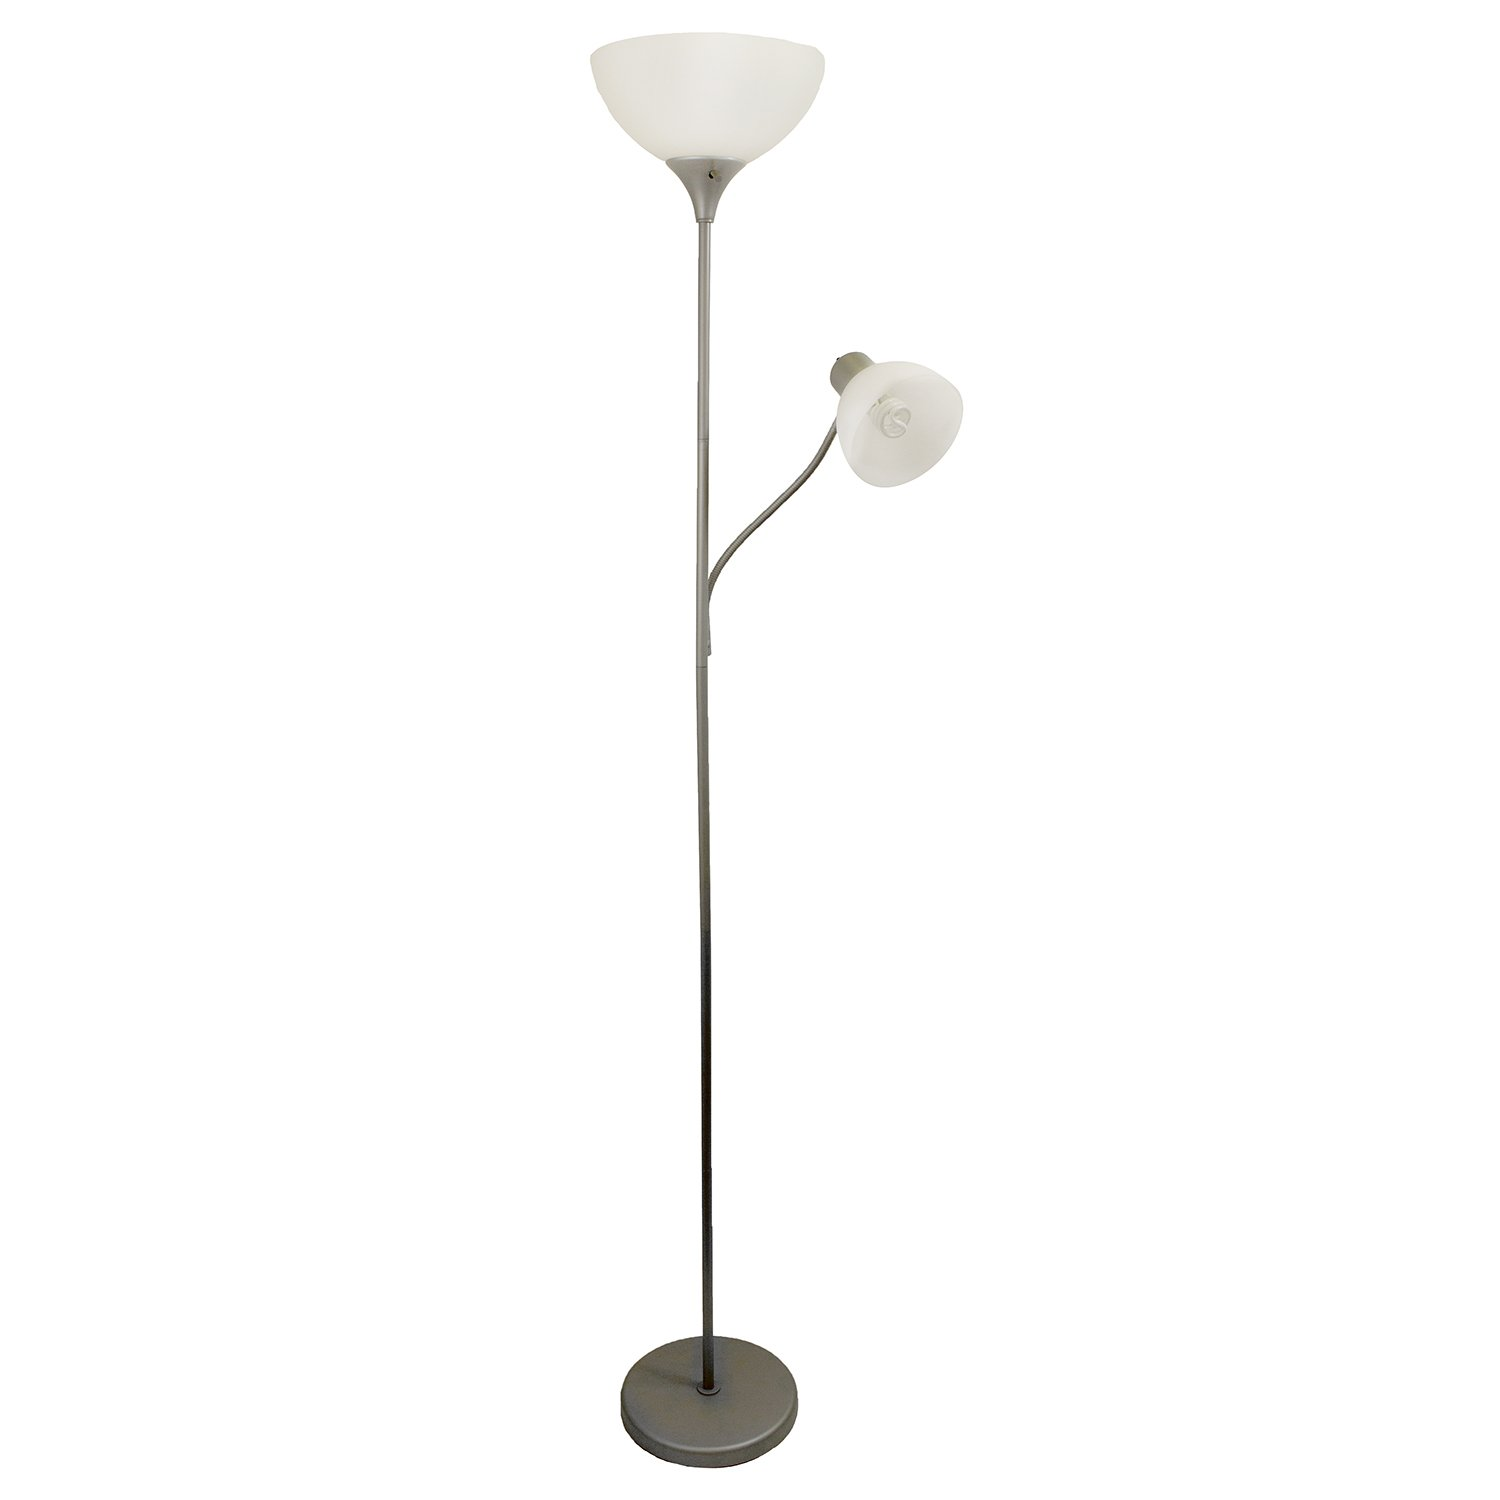 Two Light Floor Lamp: Simple Designs LF2000-SLV Floor Lamp with Reading Light, Silver,Lighting